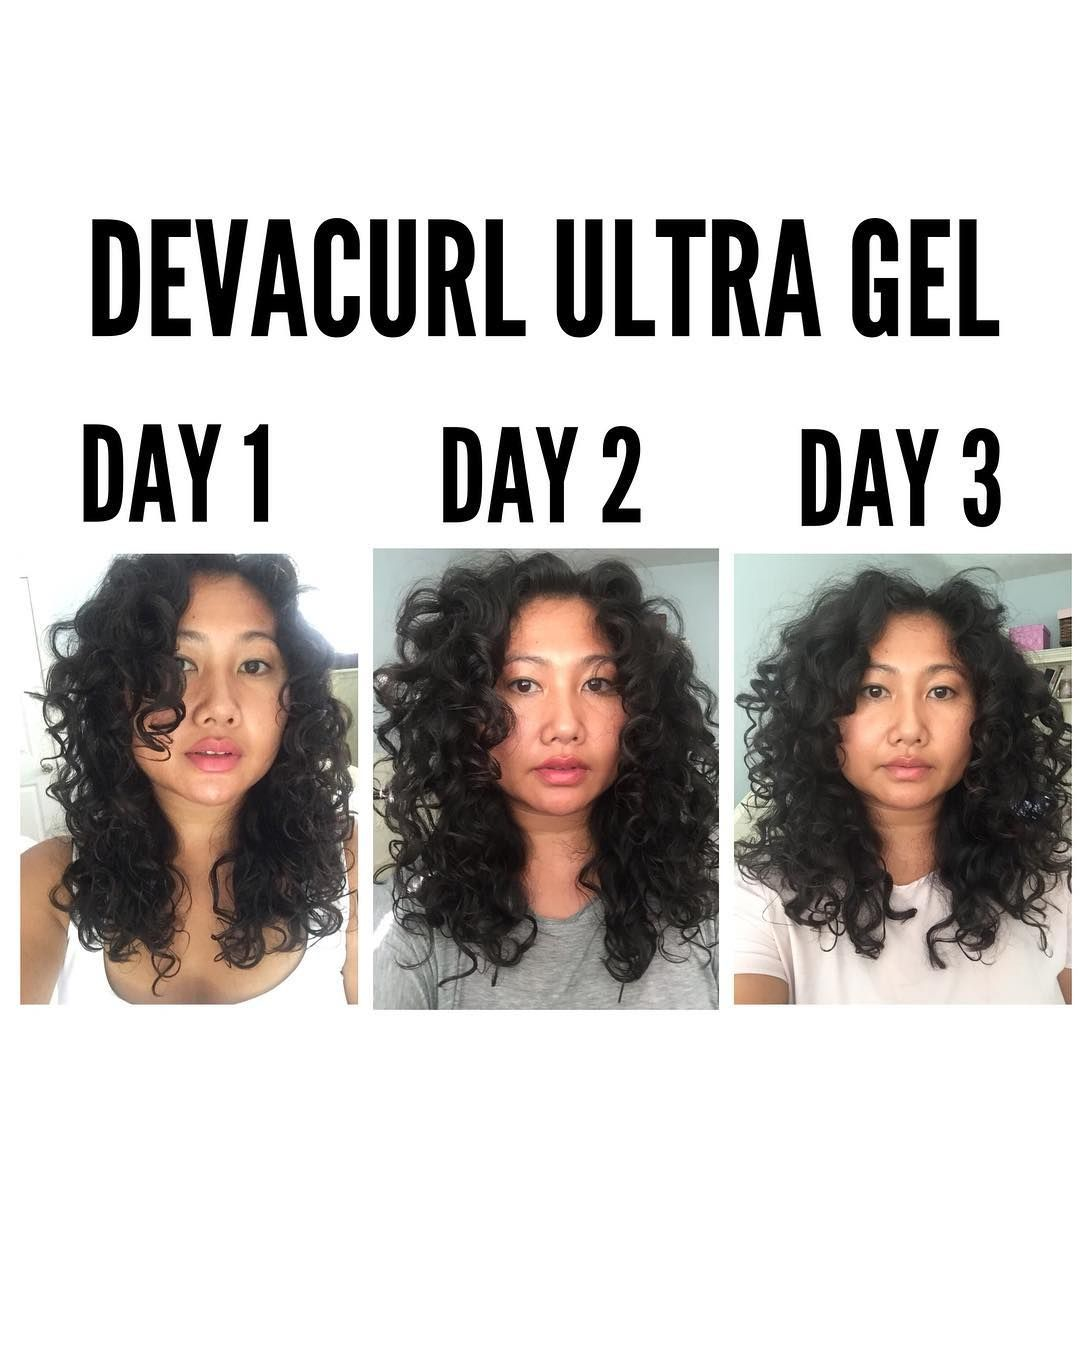 Devacurl Ultra Gel On 2c 3a Curls Over The Span Of Three Days